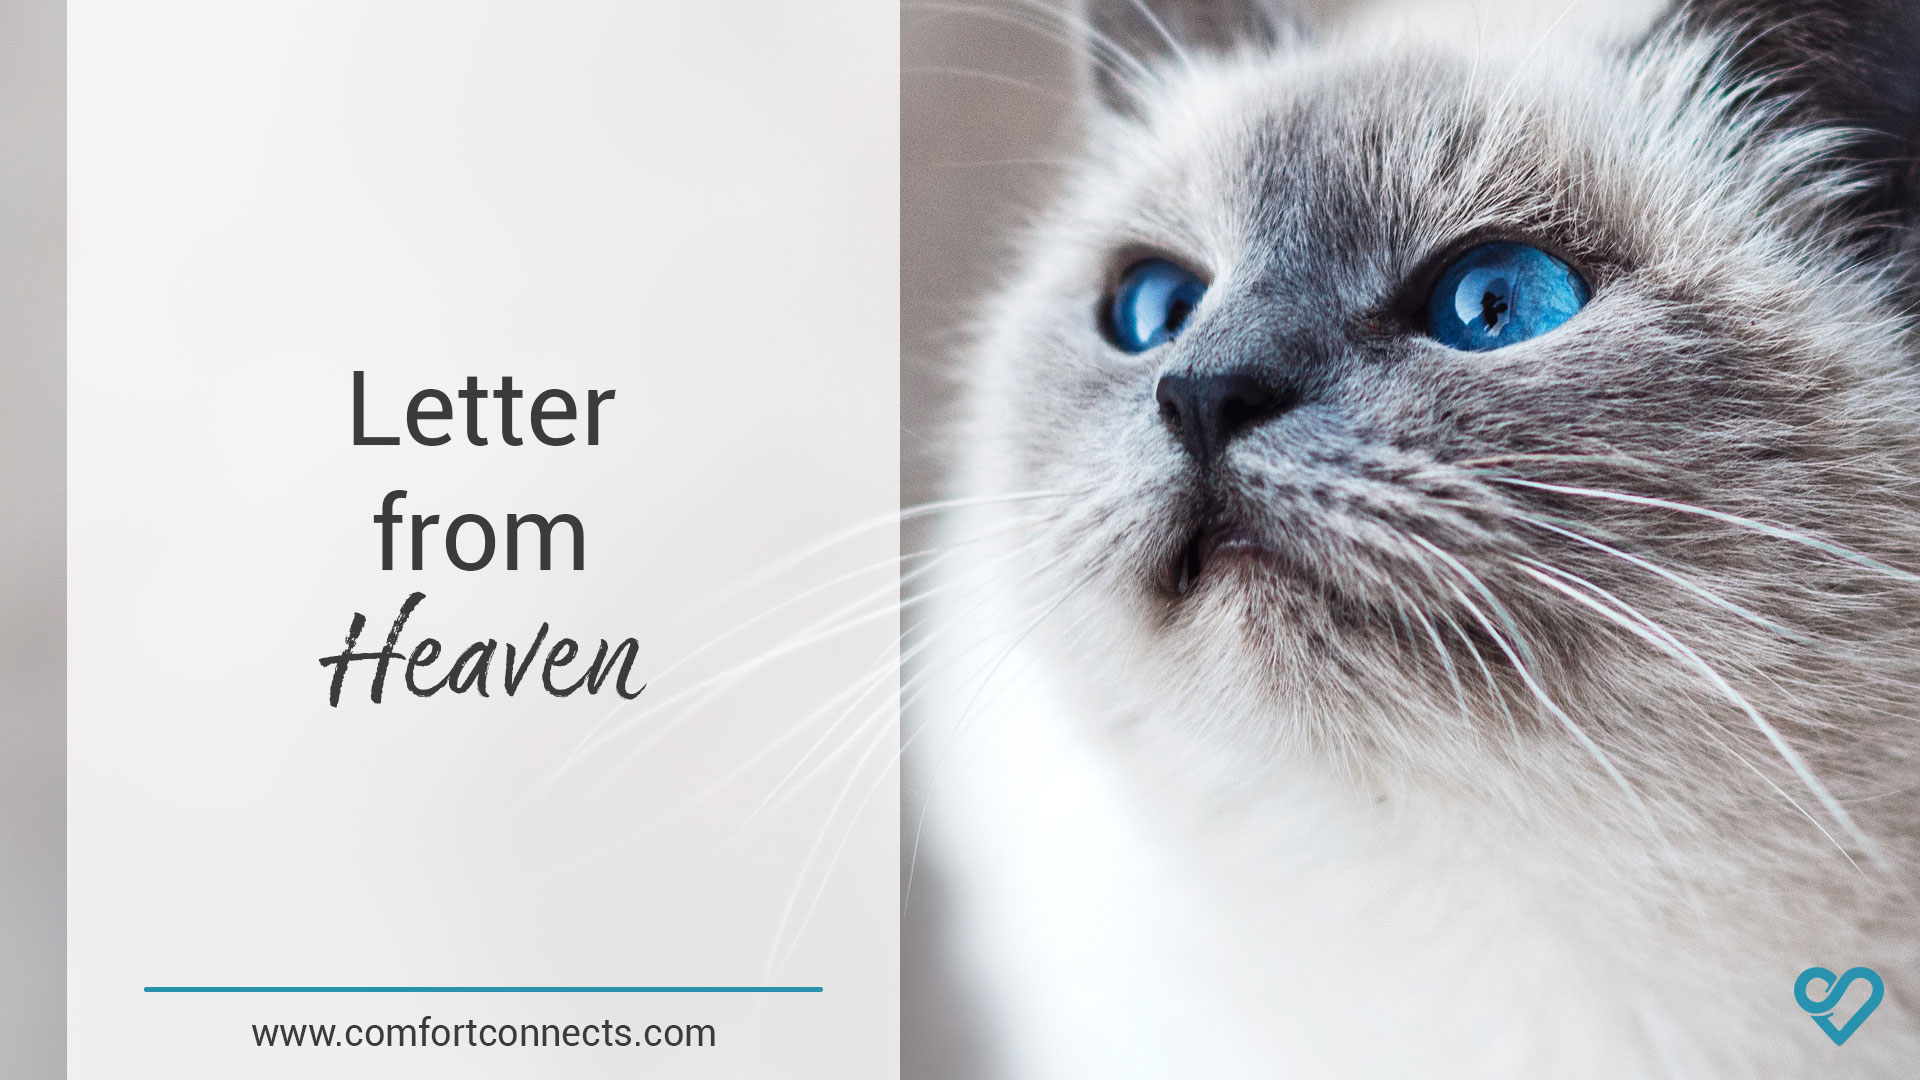 Letter from Heaven (Cat)